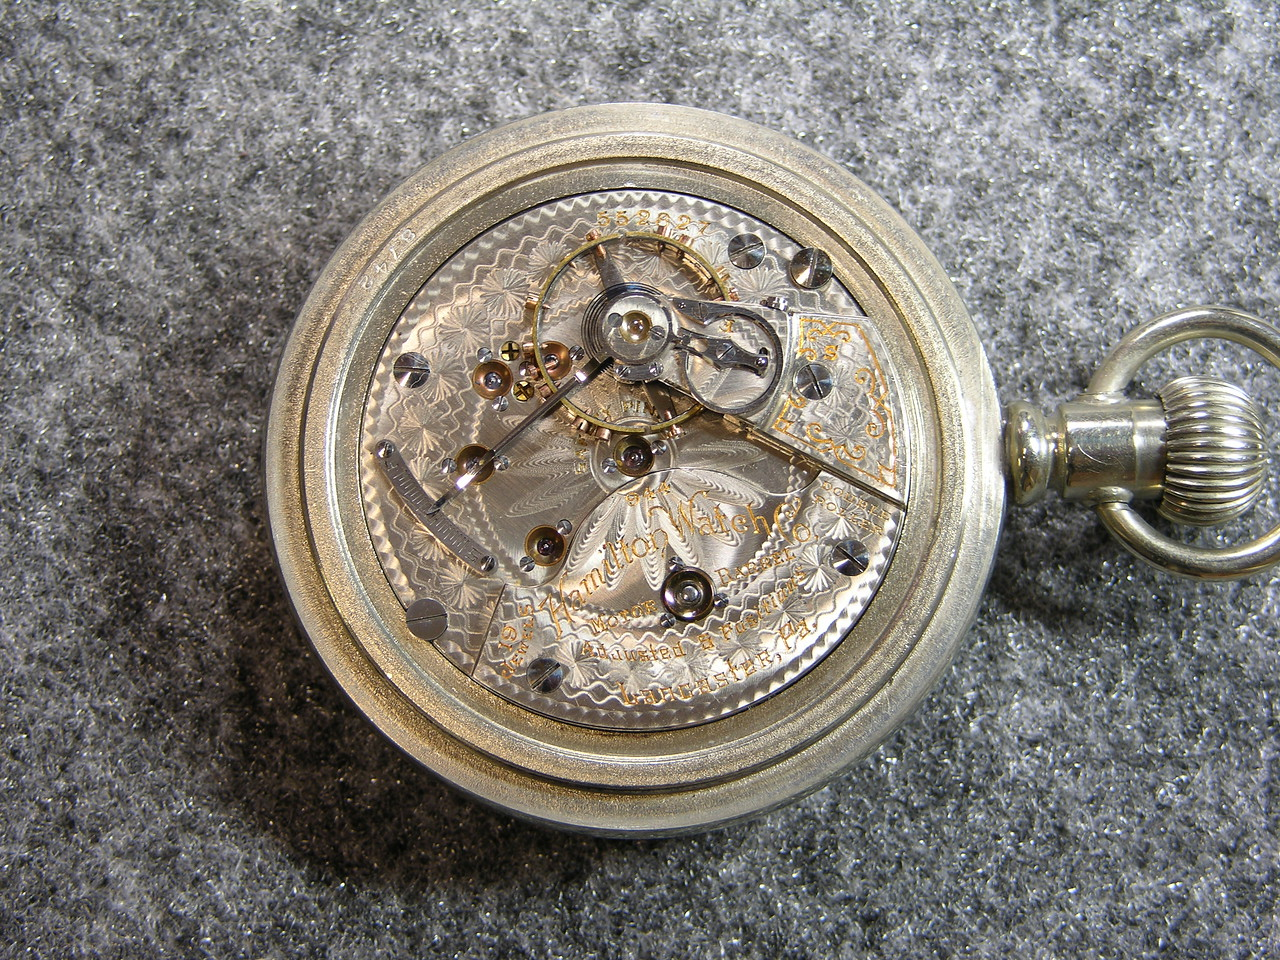 944 movement, SN 552827                        19 jewels, produced 1905-1908                 total production 6,600